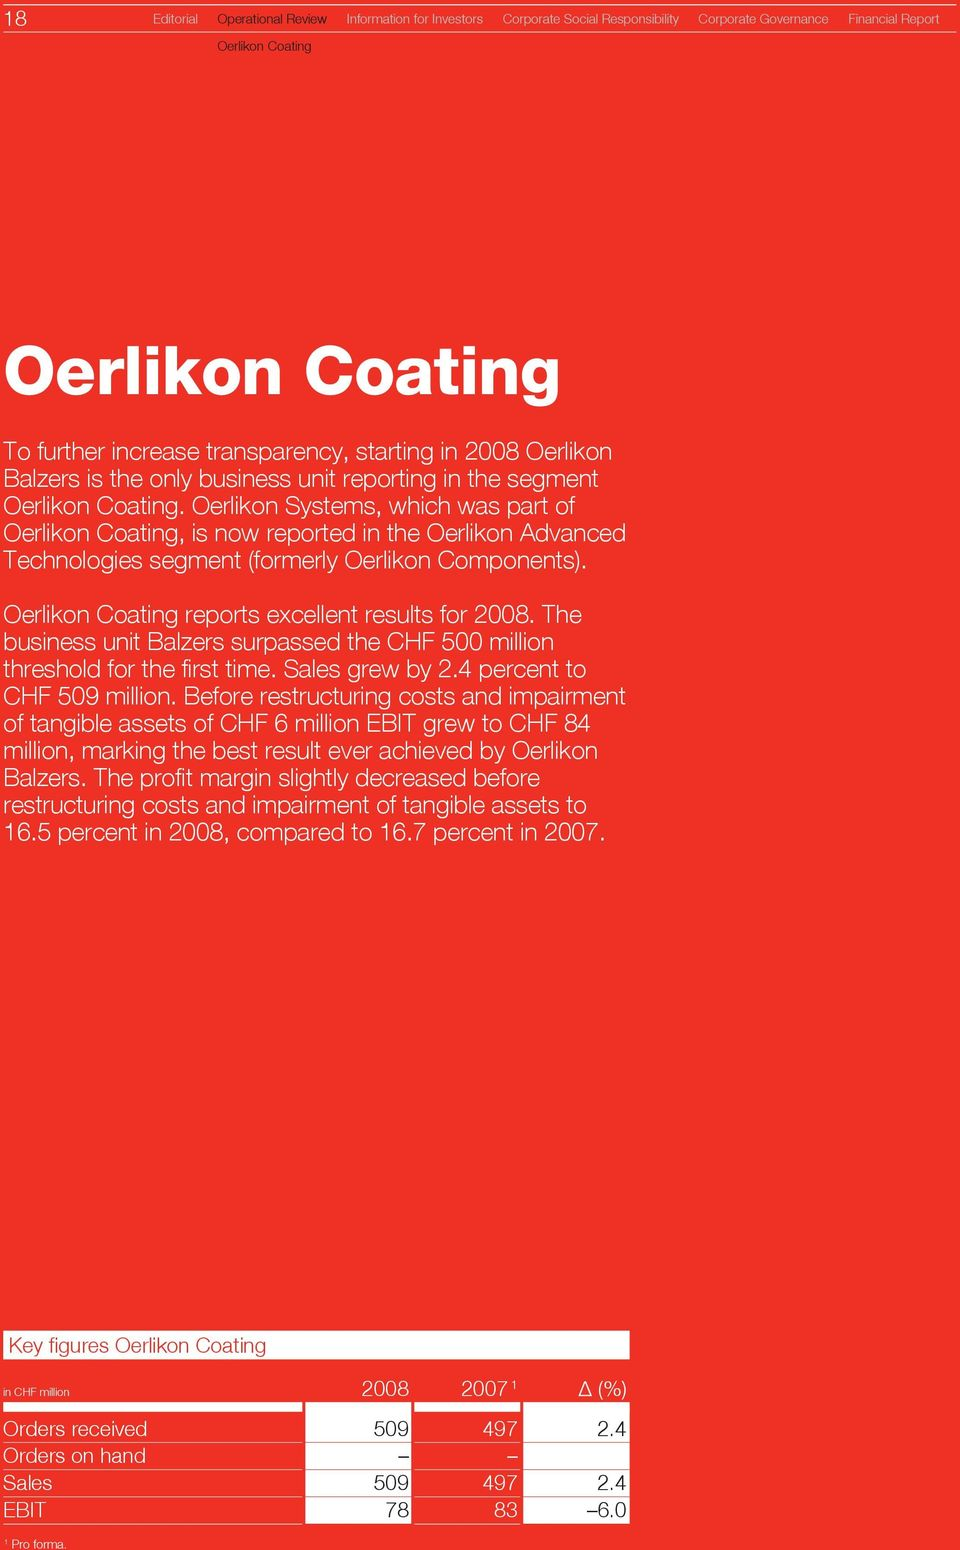 Oerlikon Systems, which was part of Oerlikon Coating, is now reported in the Oerlikon Advanced Technologies segment (formerly Oerlikon Components). Oerlikon Coating reports excellent results for 2008.